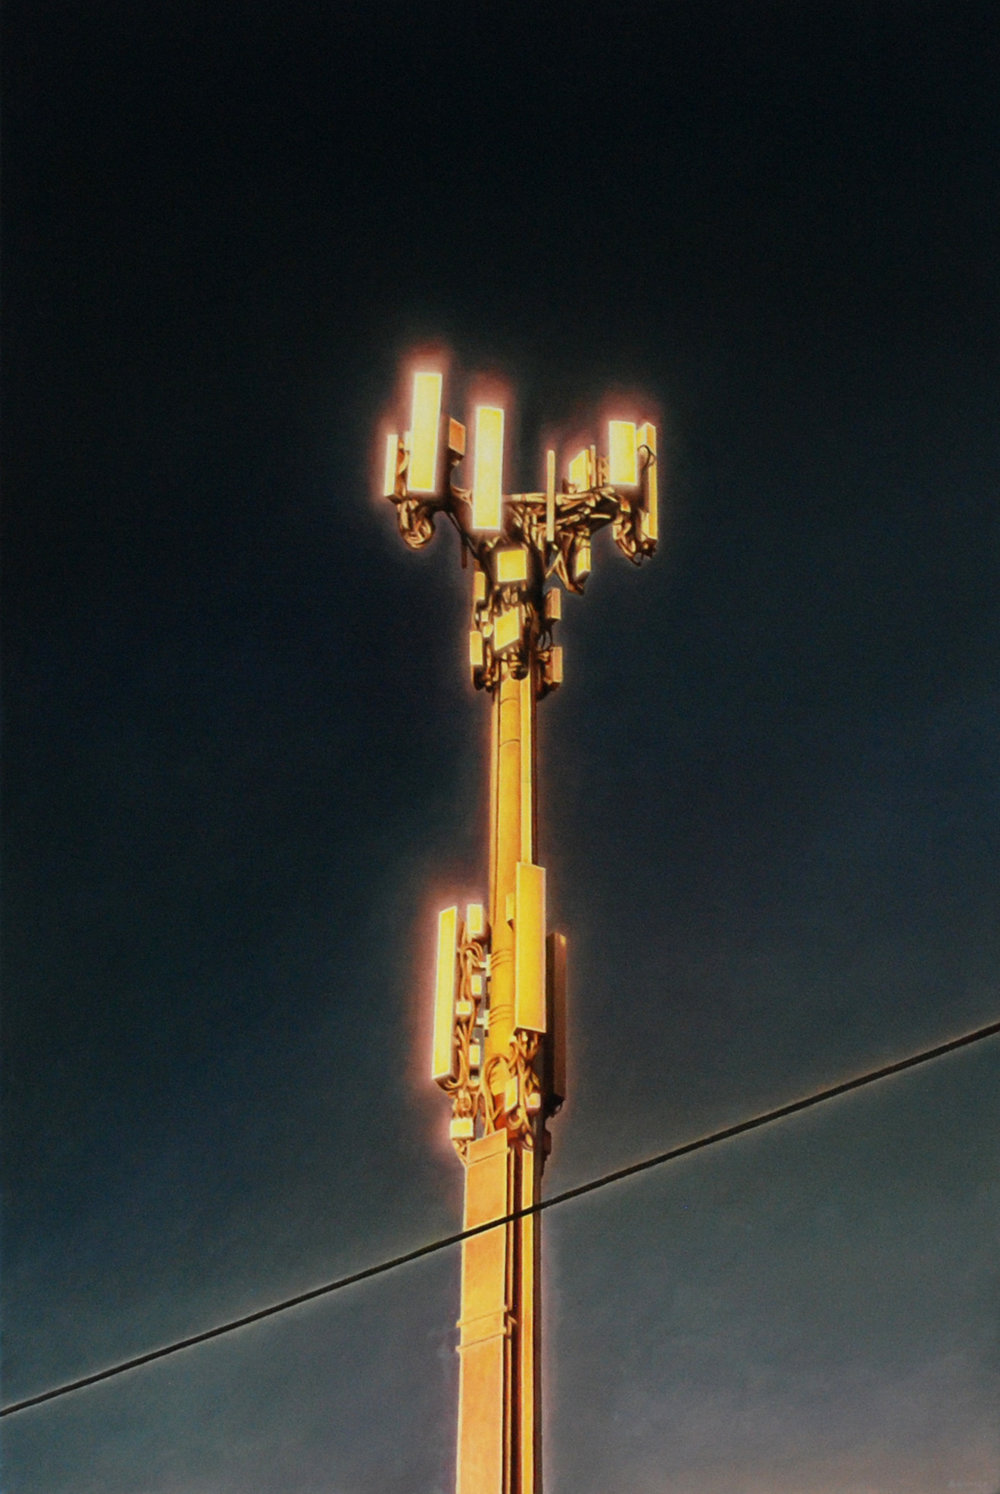 James Bonnici 'Tower 2' oil on linen, 41 x 61 cm, available